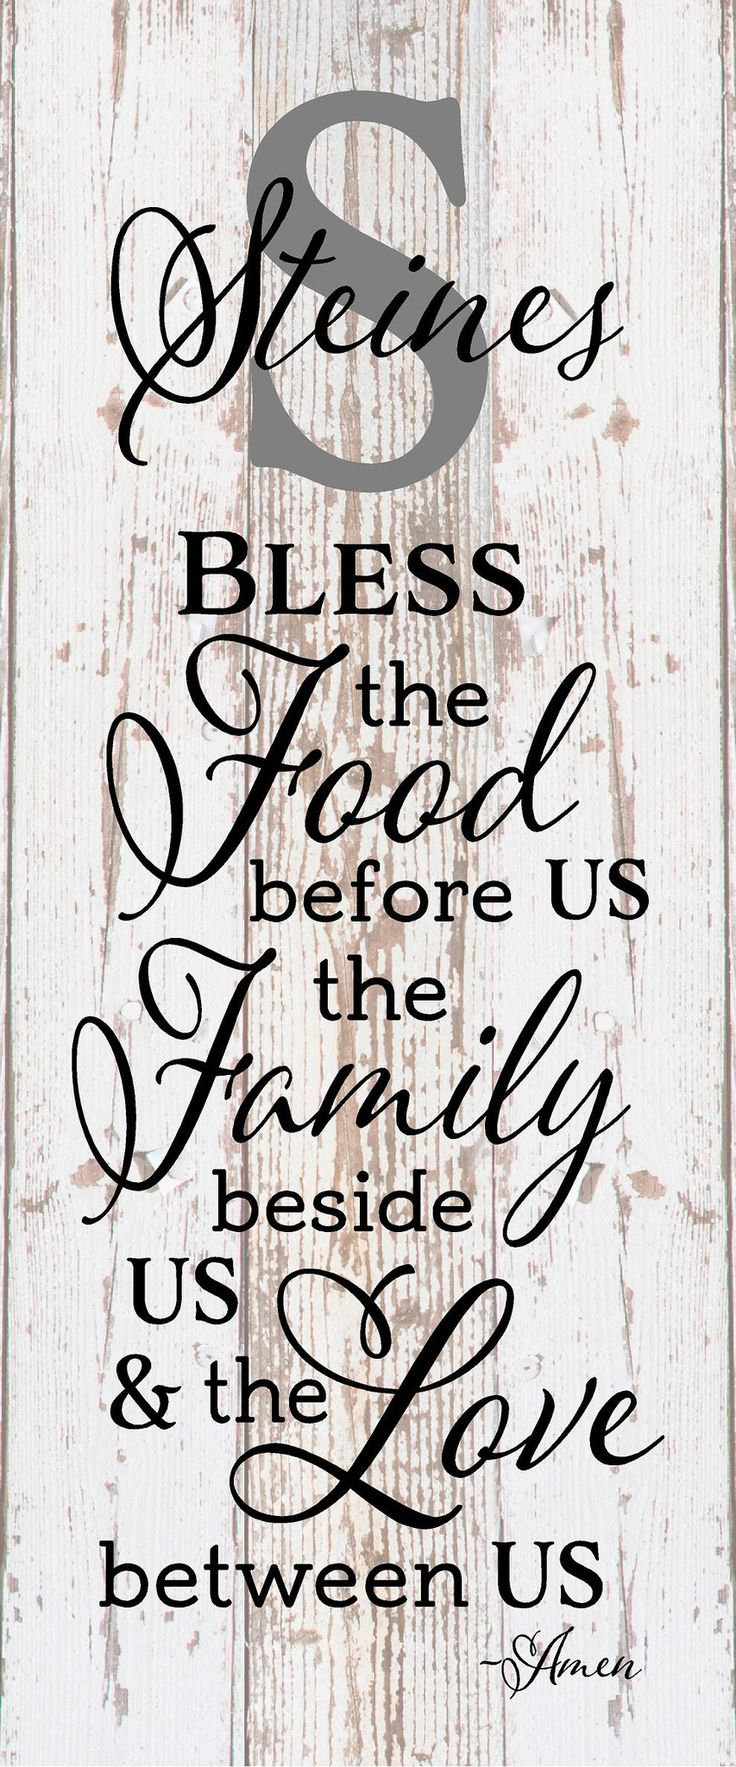 Custom Name Bless the Food Before Us The Family Beside Us and the Love between Us Wood Sign Canvas Wall Art Thanksgiving Christmas